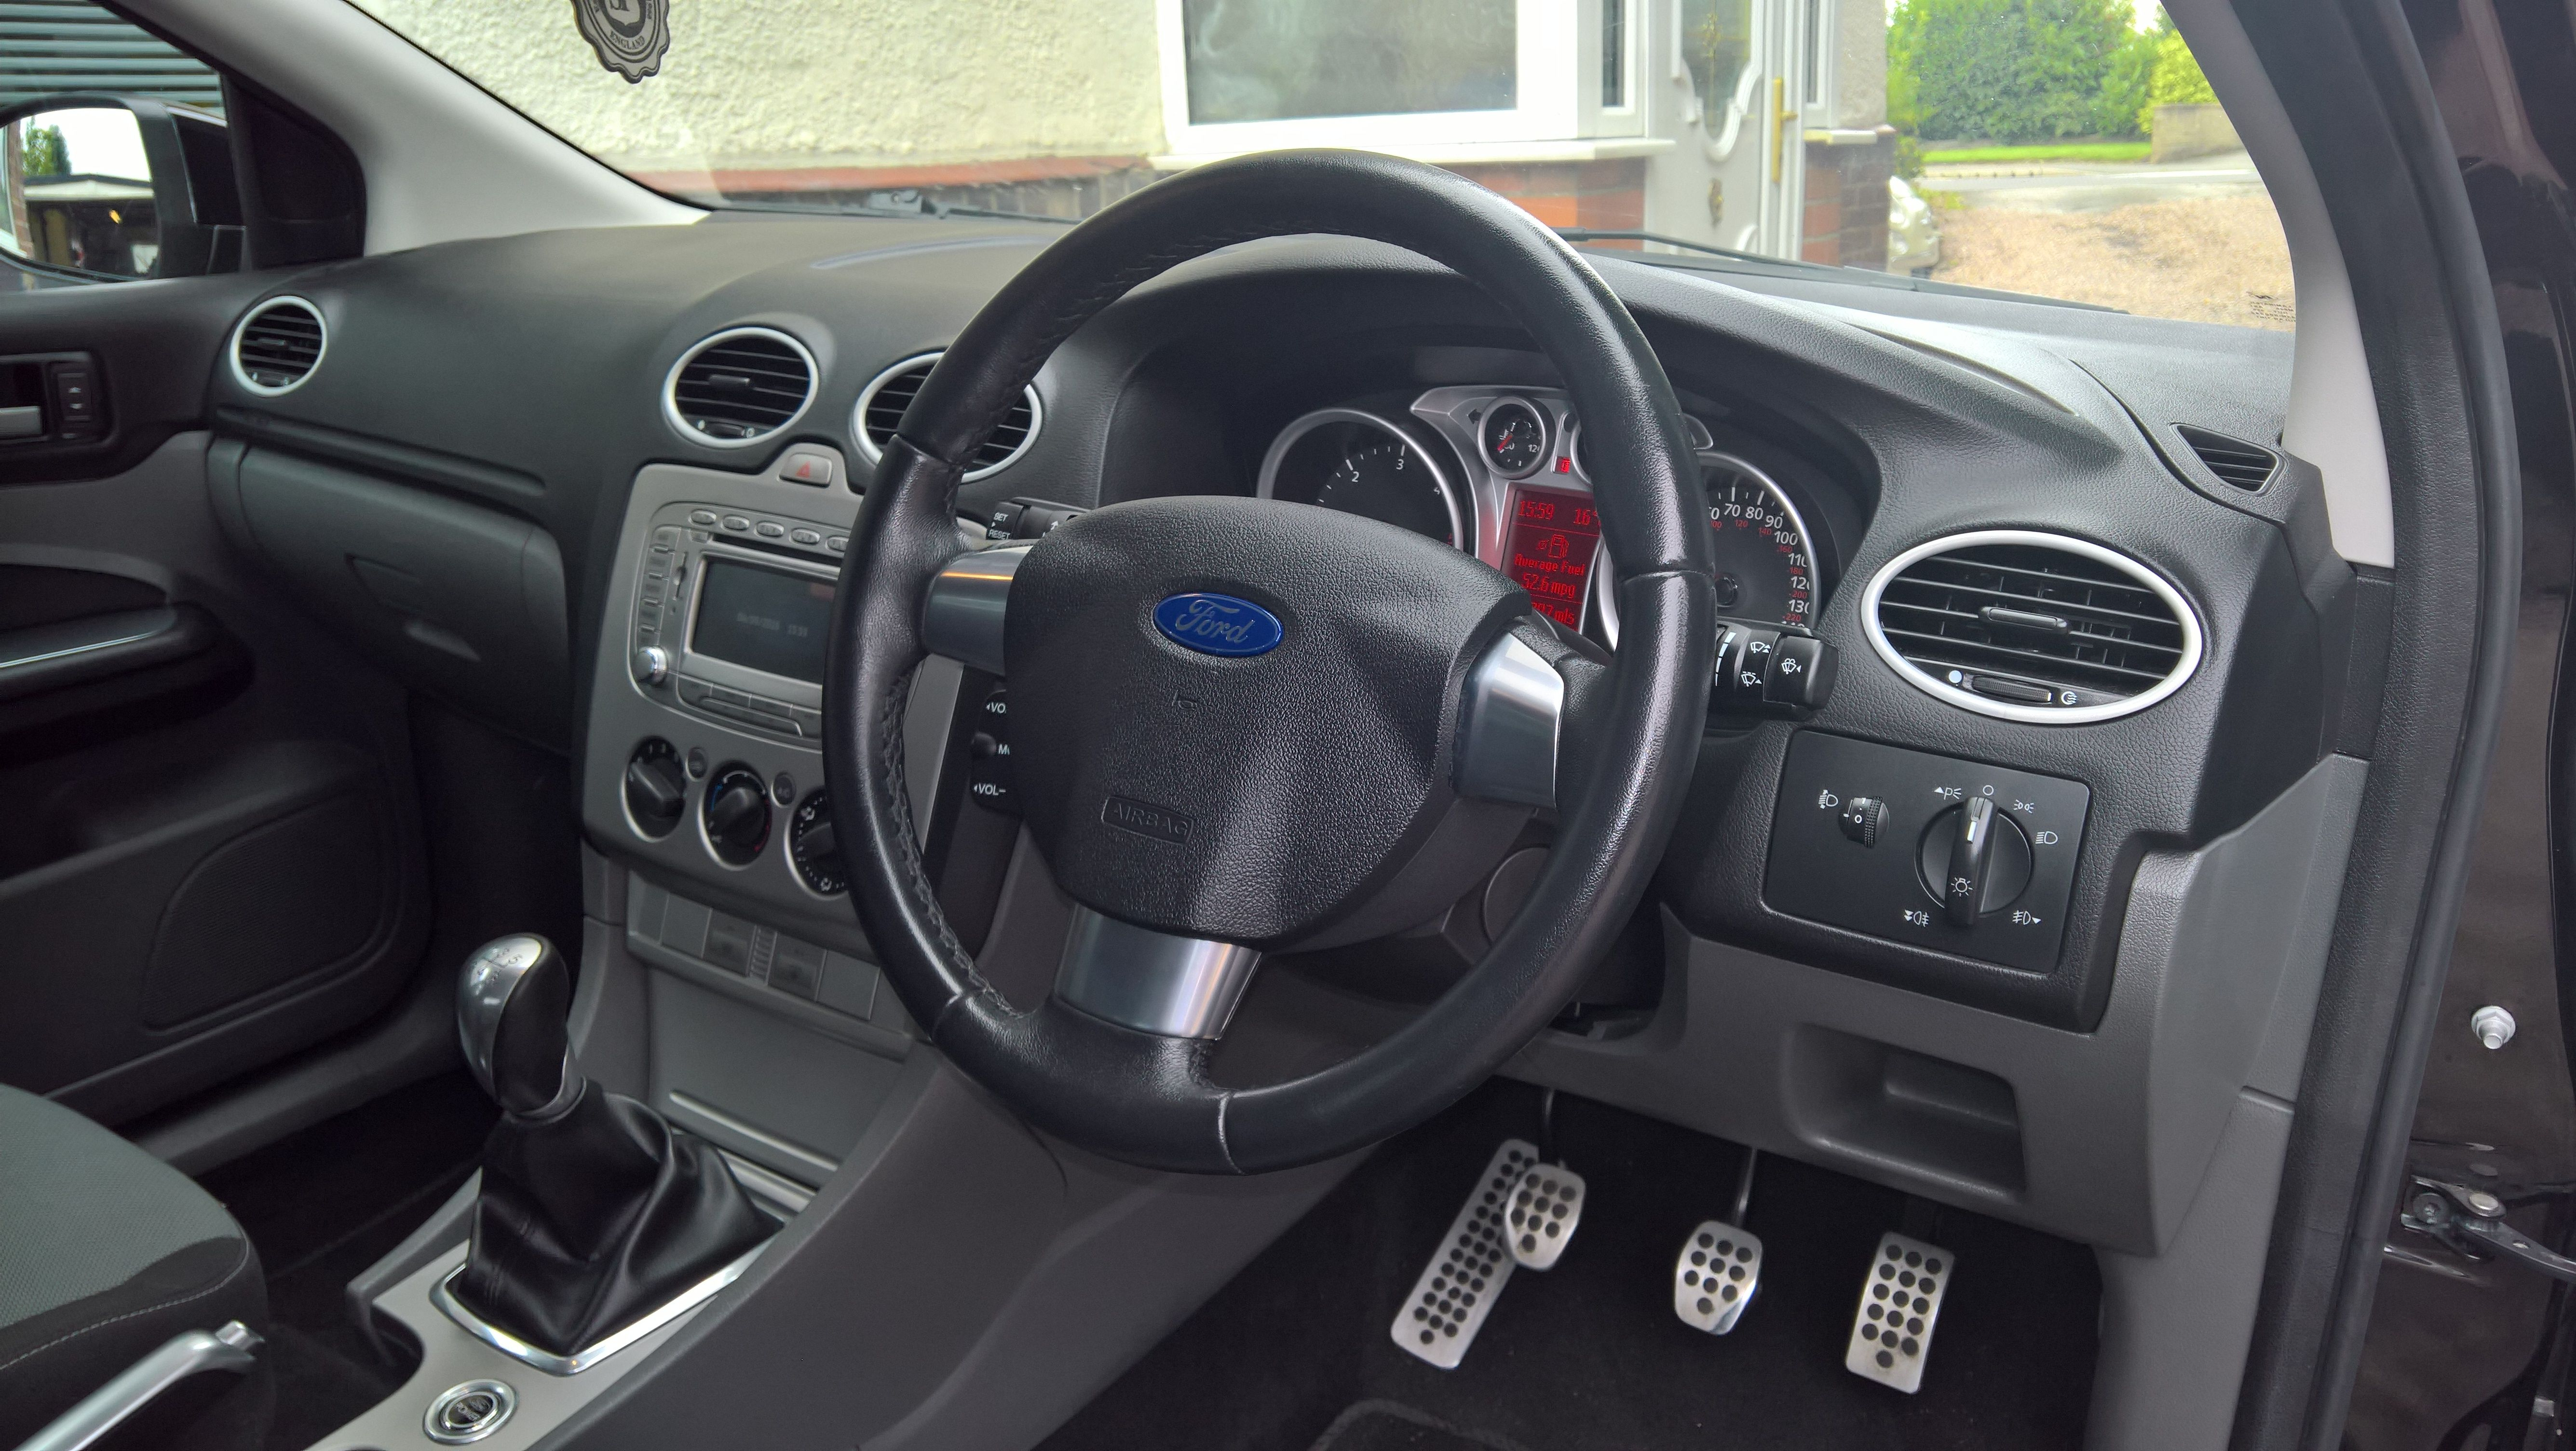 My Ford Focus Zetec S Dashboard Steering Wheel My Ford Focus